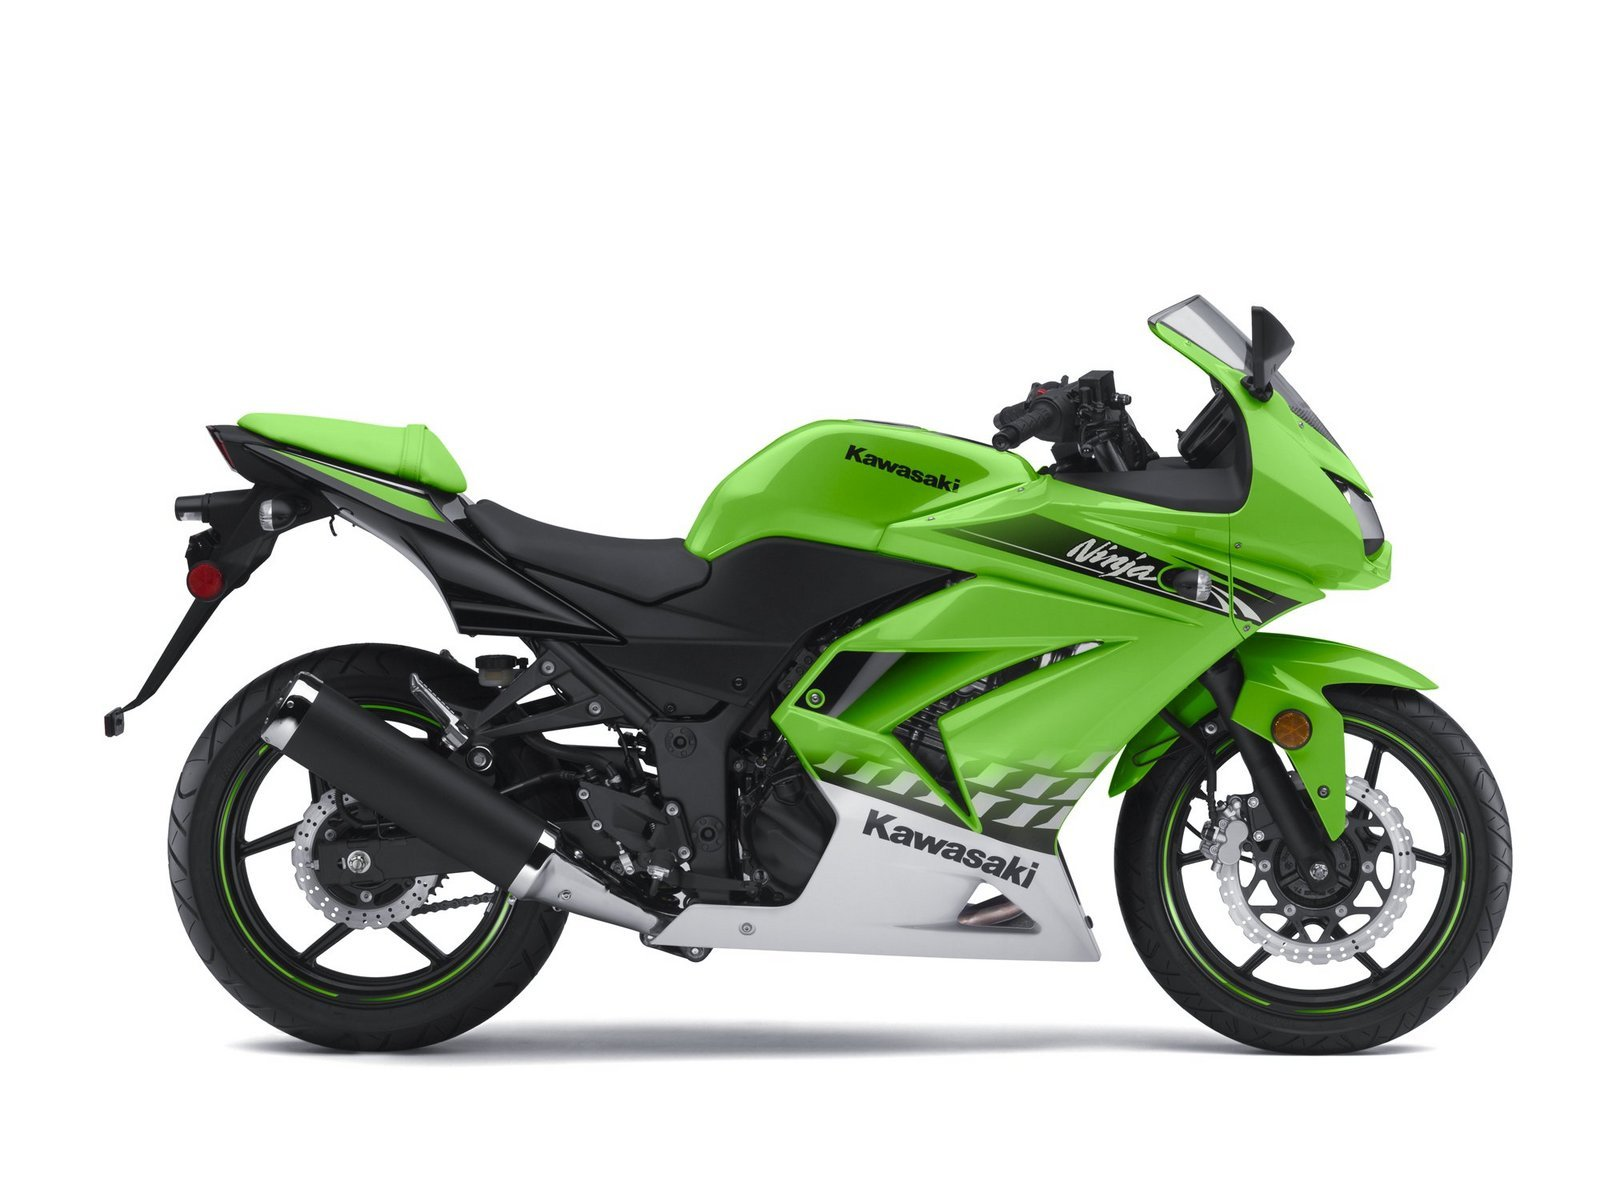 2010 kawasaki ninja 250r picture 345226 motorcycle review top speed. Black Bedroom Furniture Sets. Home Design Ideas